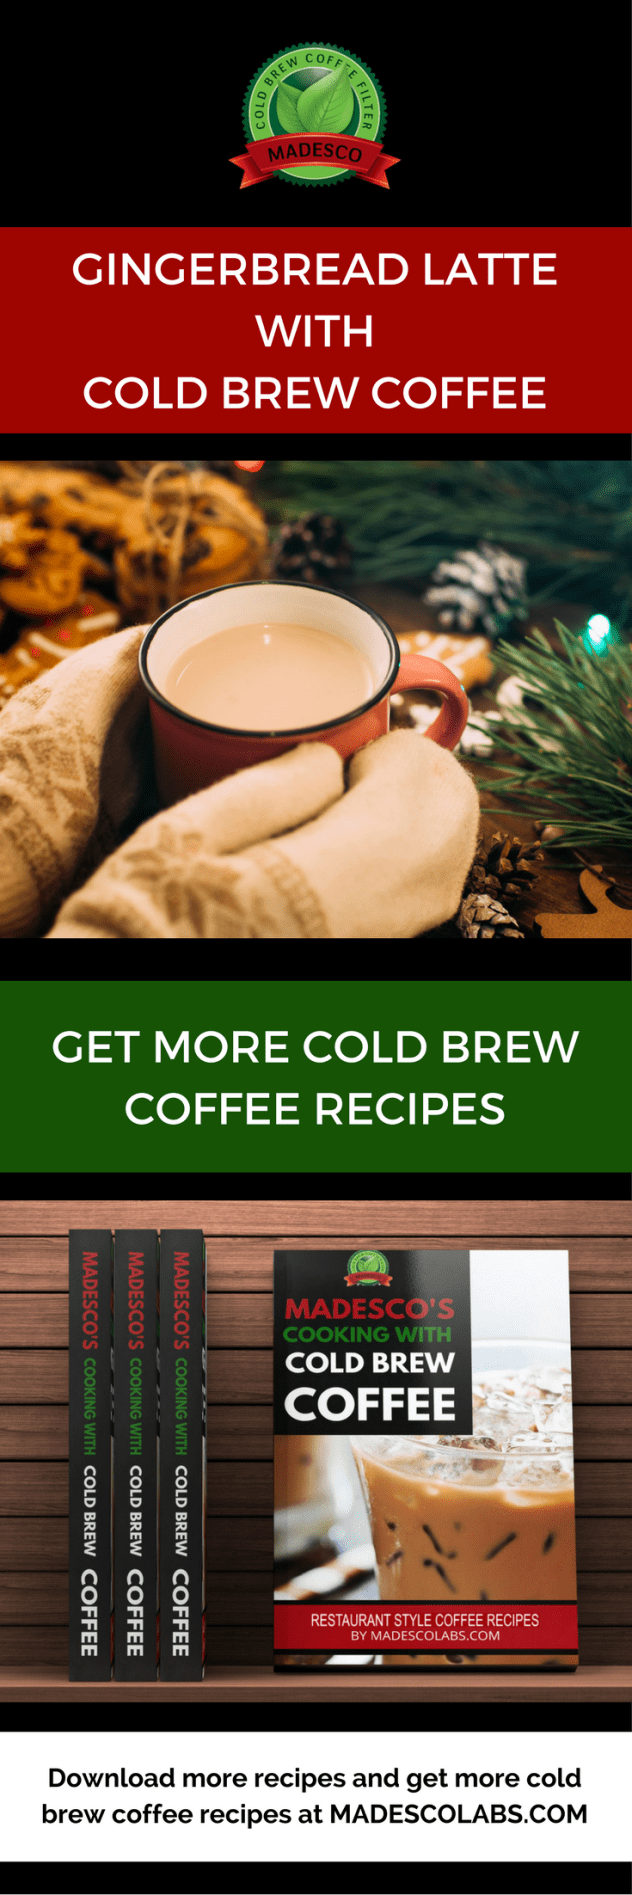 COLD BREW COFFEE - GINGERBREAD LATTE